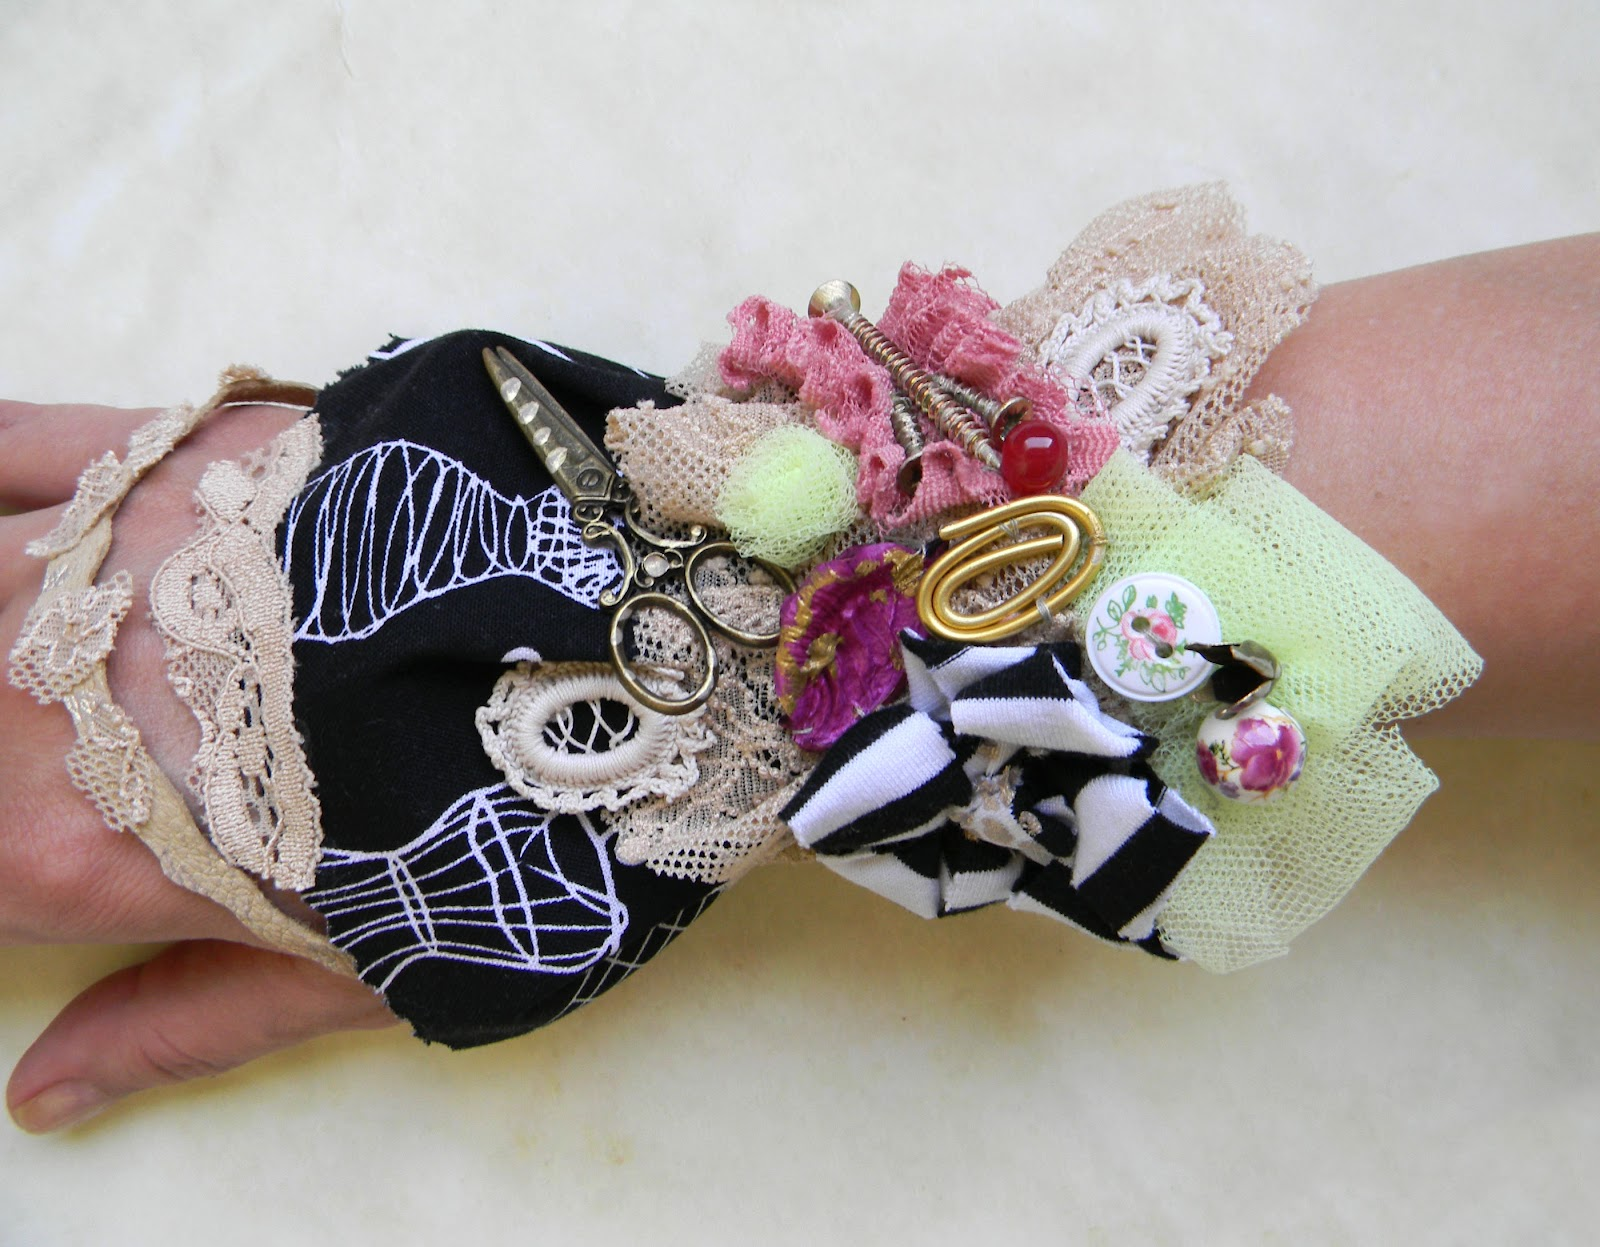 Original Cuff/Steampunk and Romantic Inspired